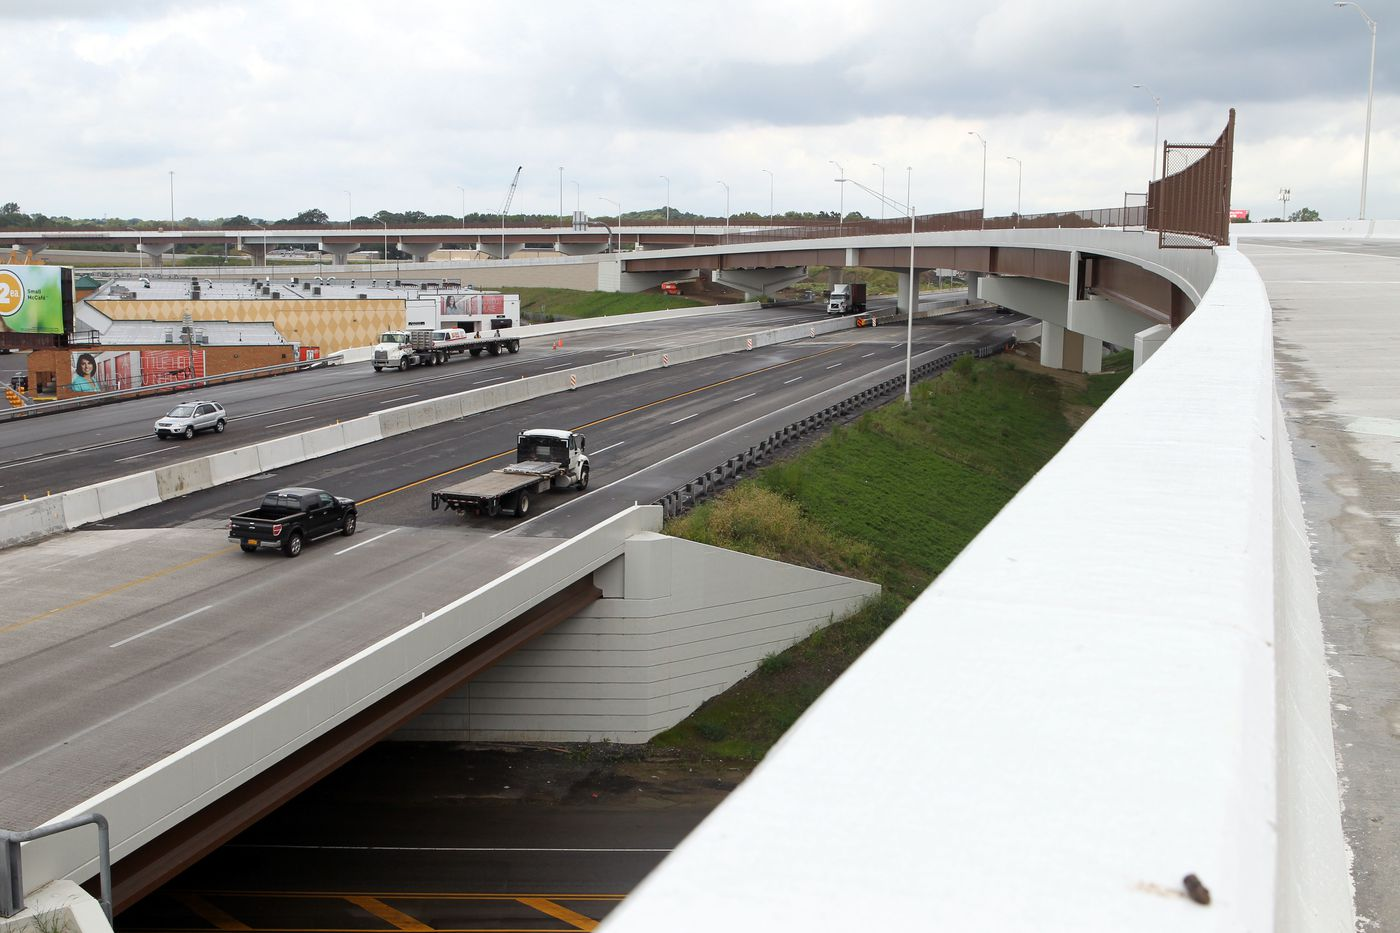 New Pa. stretch completes I-95 after 62 years